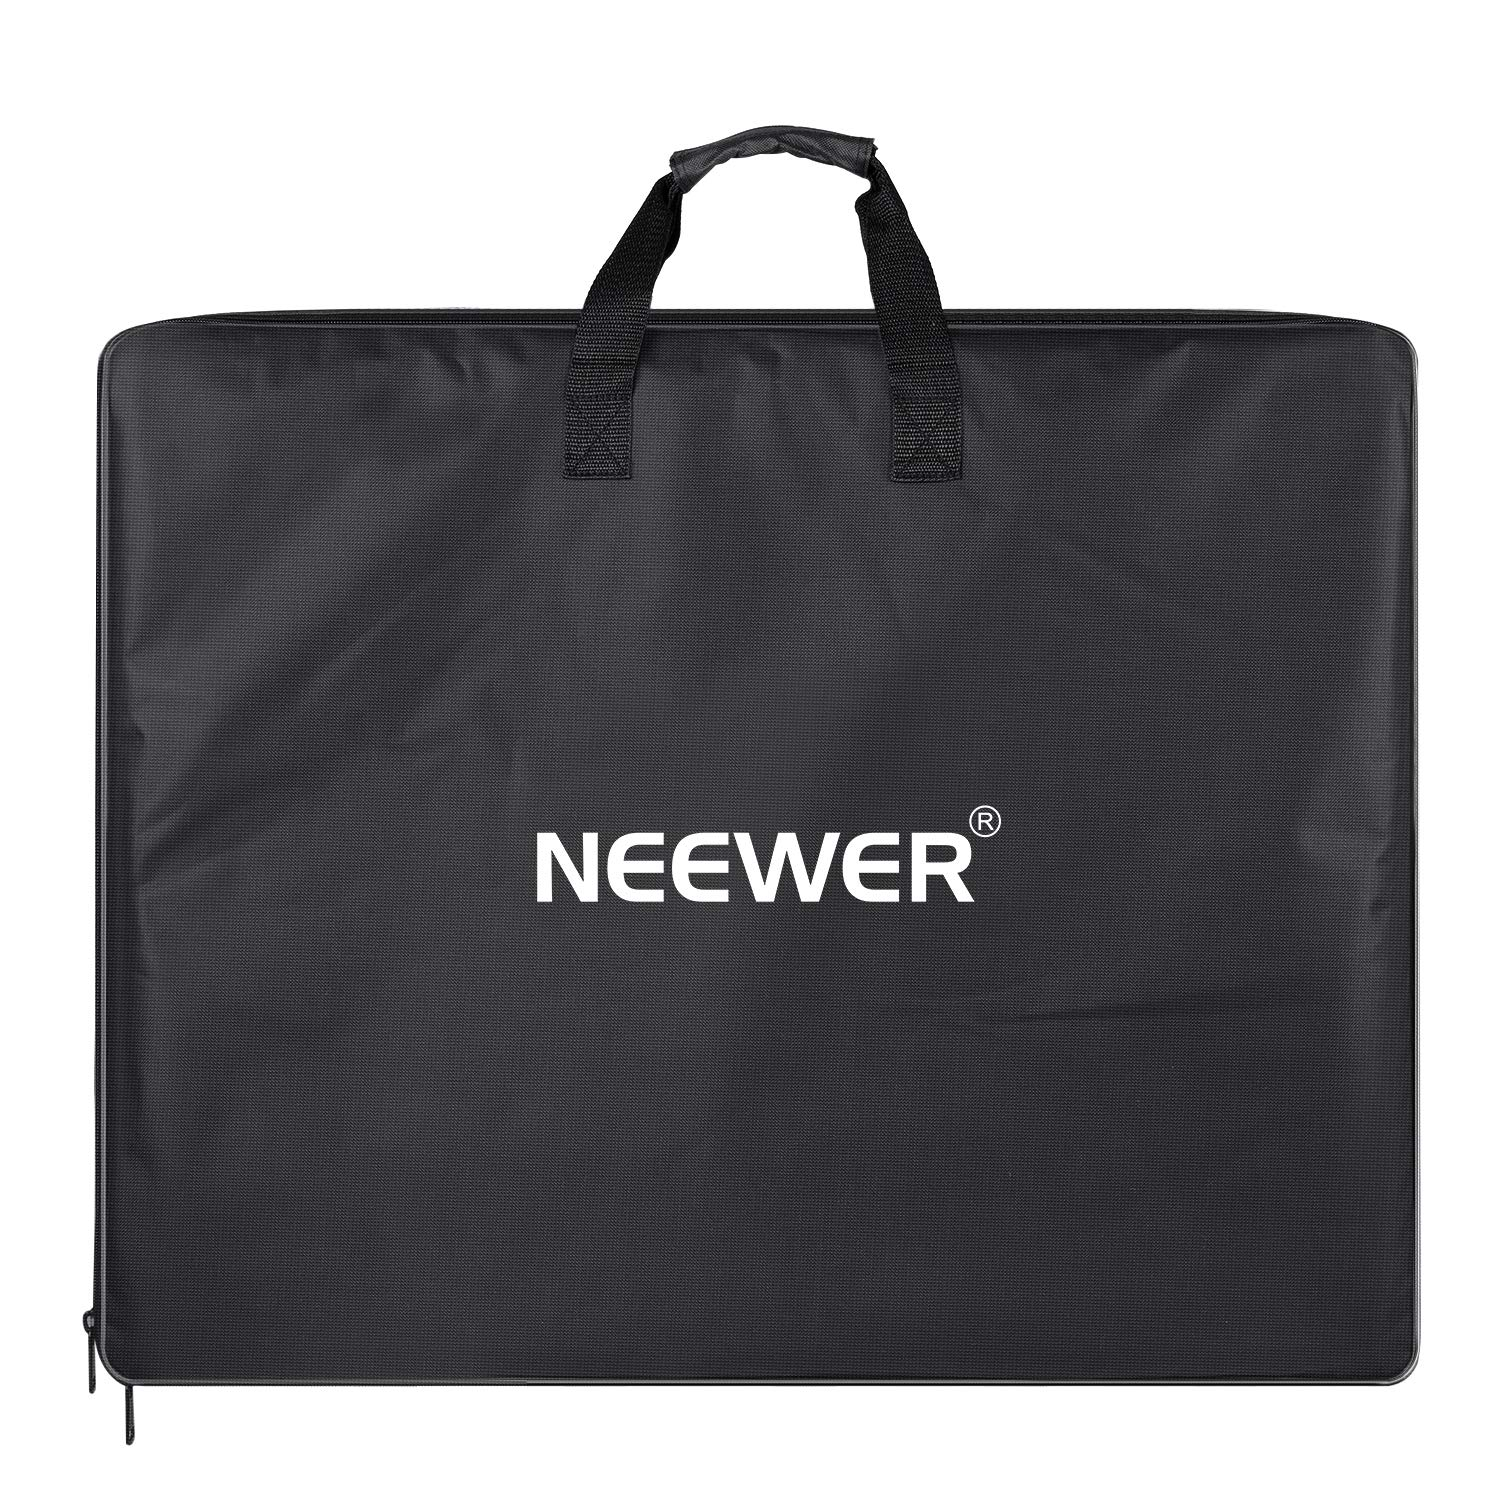 Neewer Enlarged Carrying Bag for 18 inches Ring Light, Light Stand, Accessories - 29.5x23.6 inches/75x60 Centimeters Protective Case, Durable Nylon,Light Weight (Black) by Neewer (Image #6)